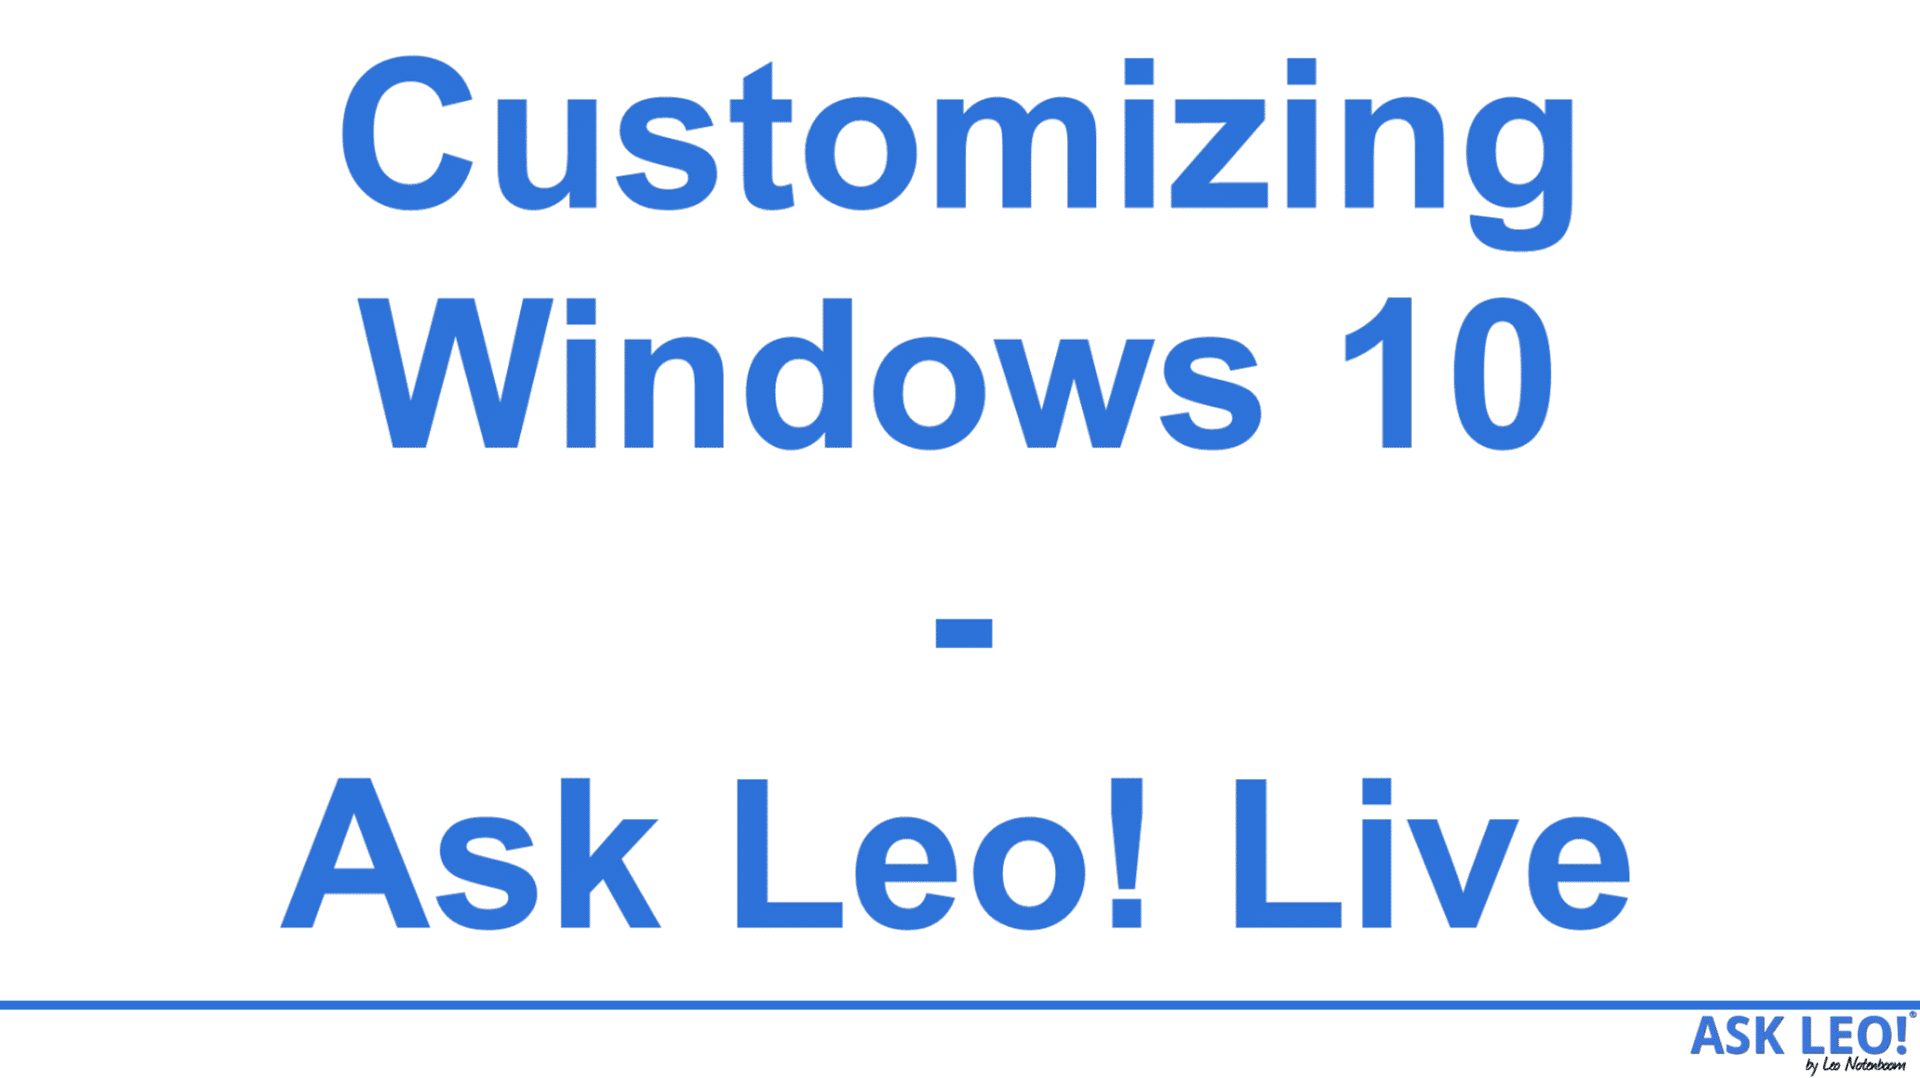 Customizing Windows 10 - Ask Leo! Live